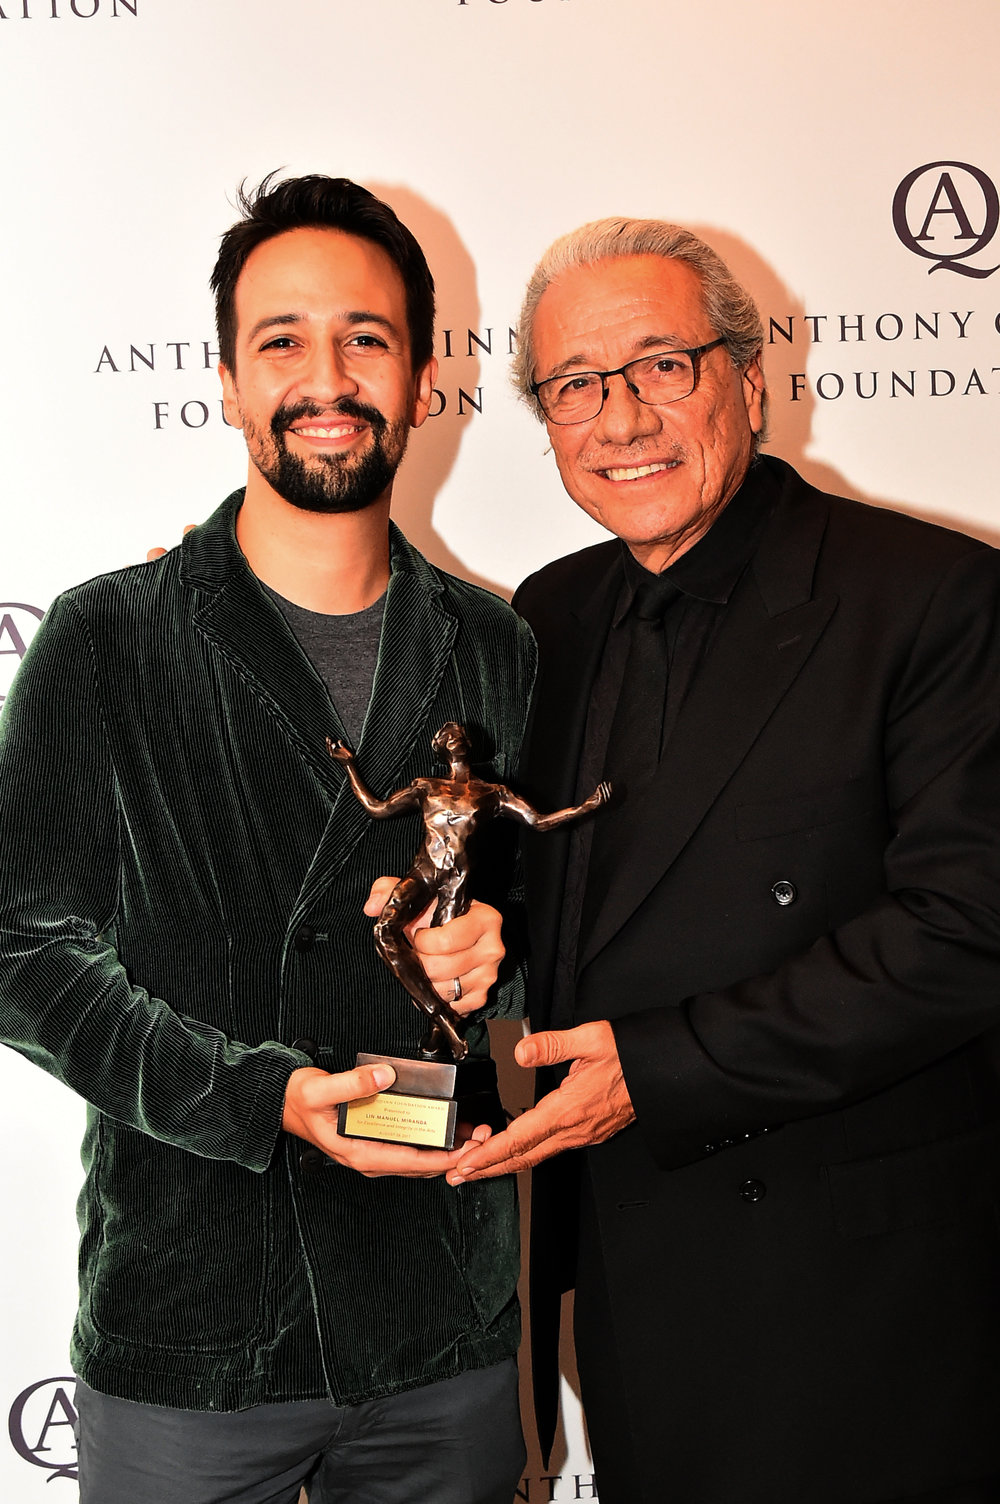 The Anthony Quinn Foundation AwardThe Anthony Quinn Foundation Award is presented to an individual who has made a significant impact in the arts, or their development, furtherance, and support.   -